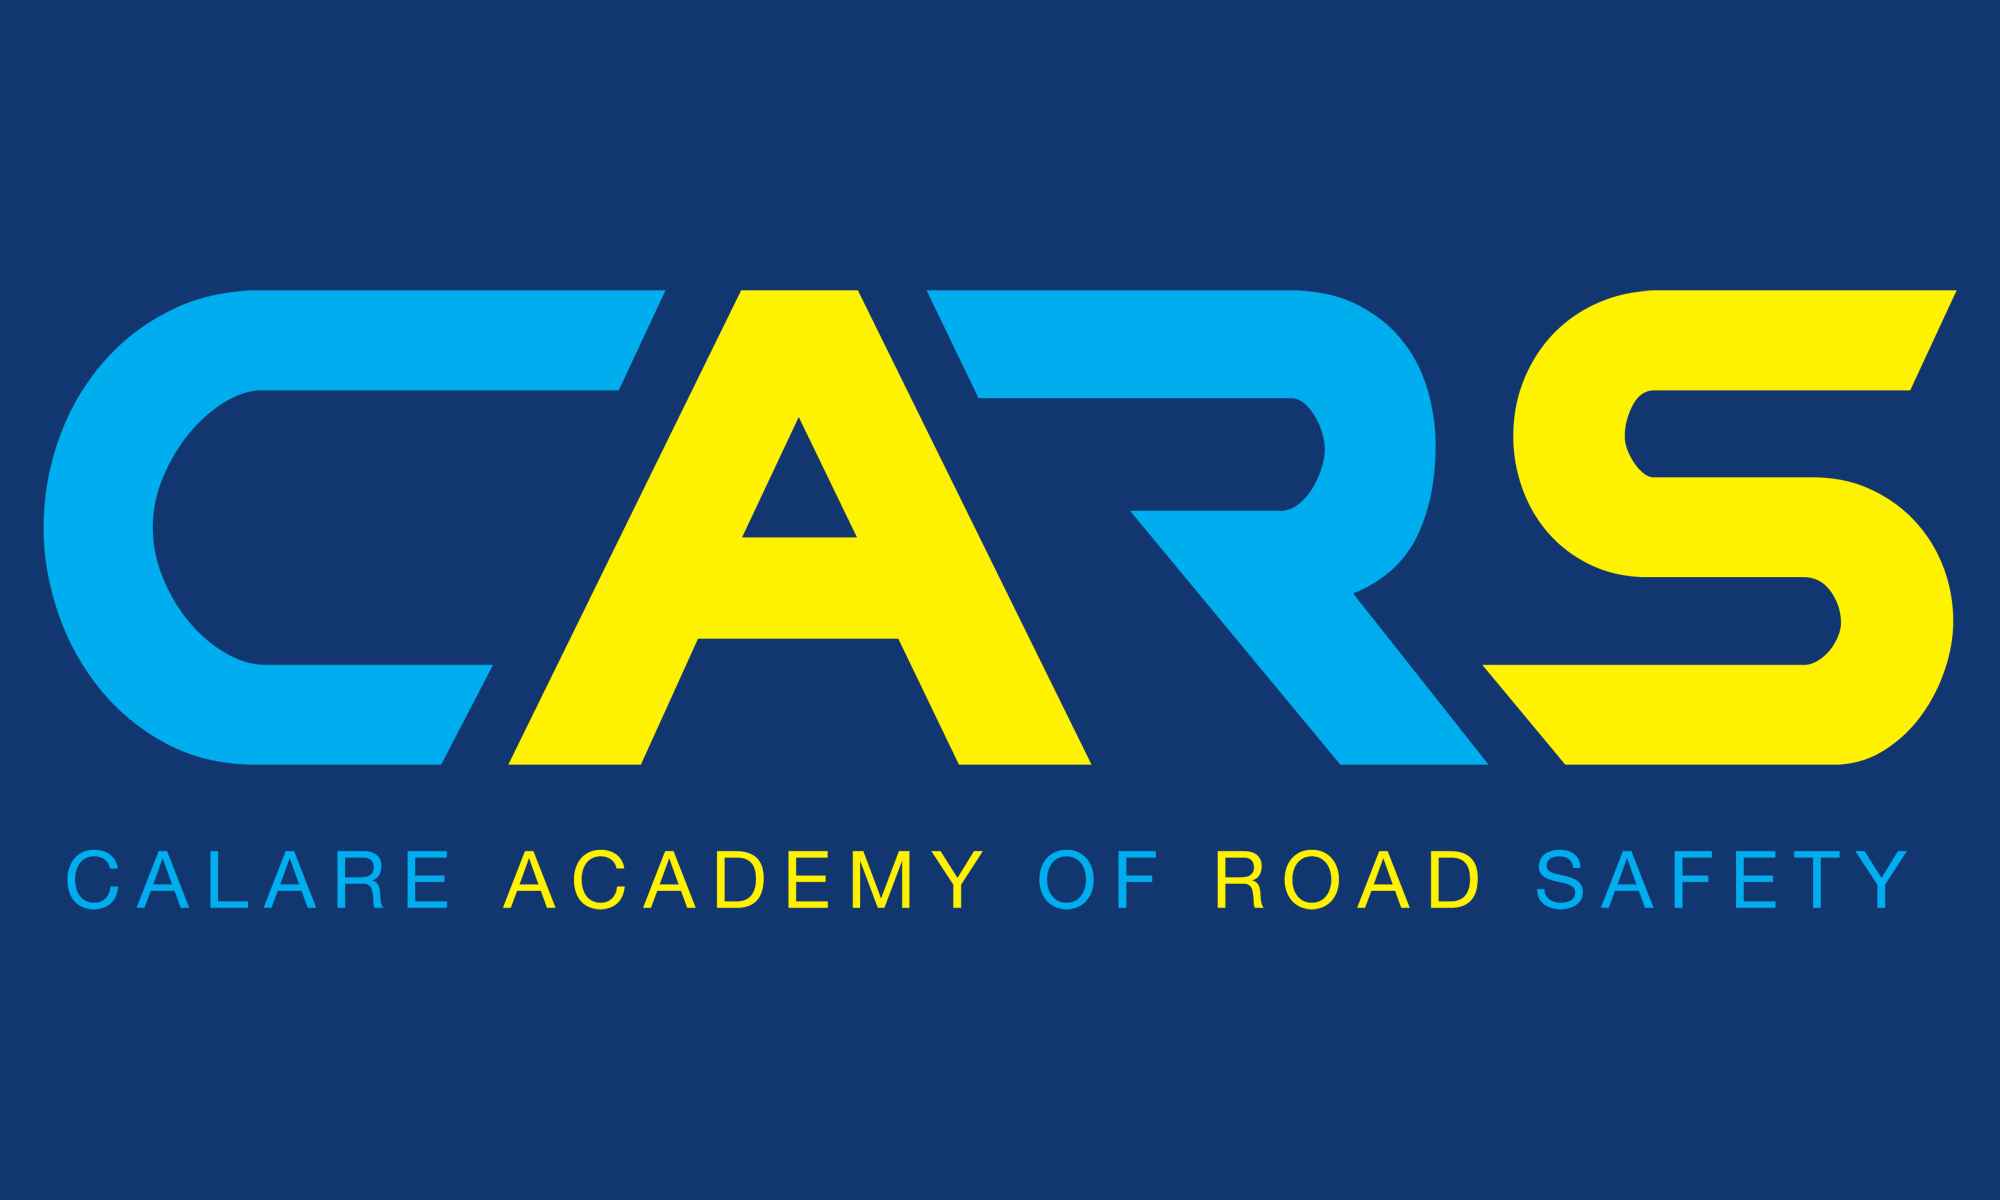 Calare Academy of Road Safety